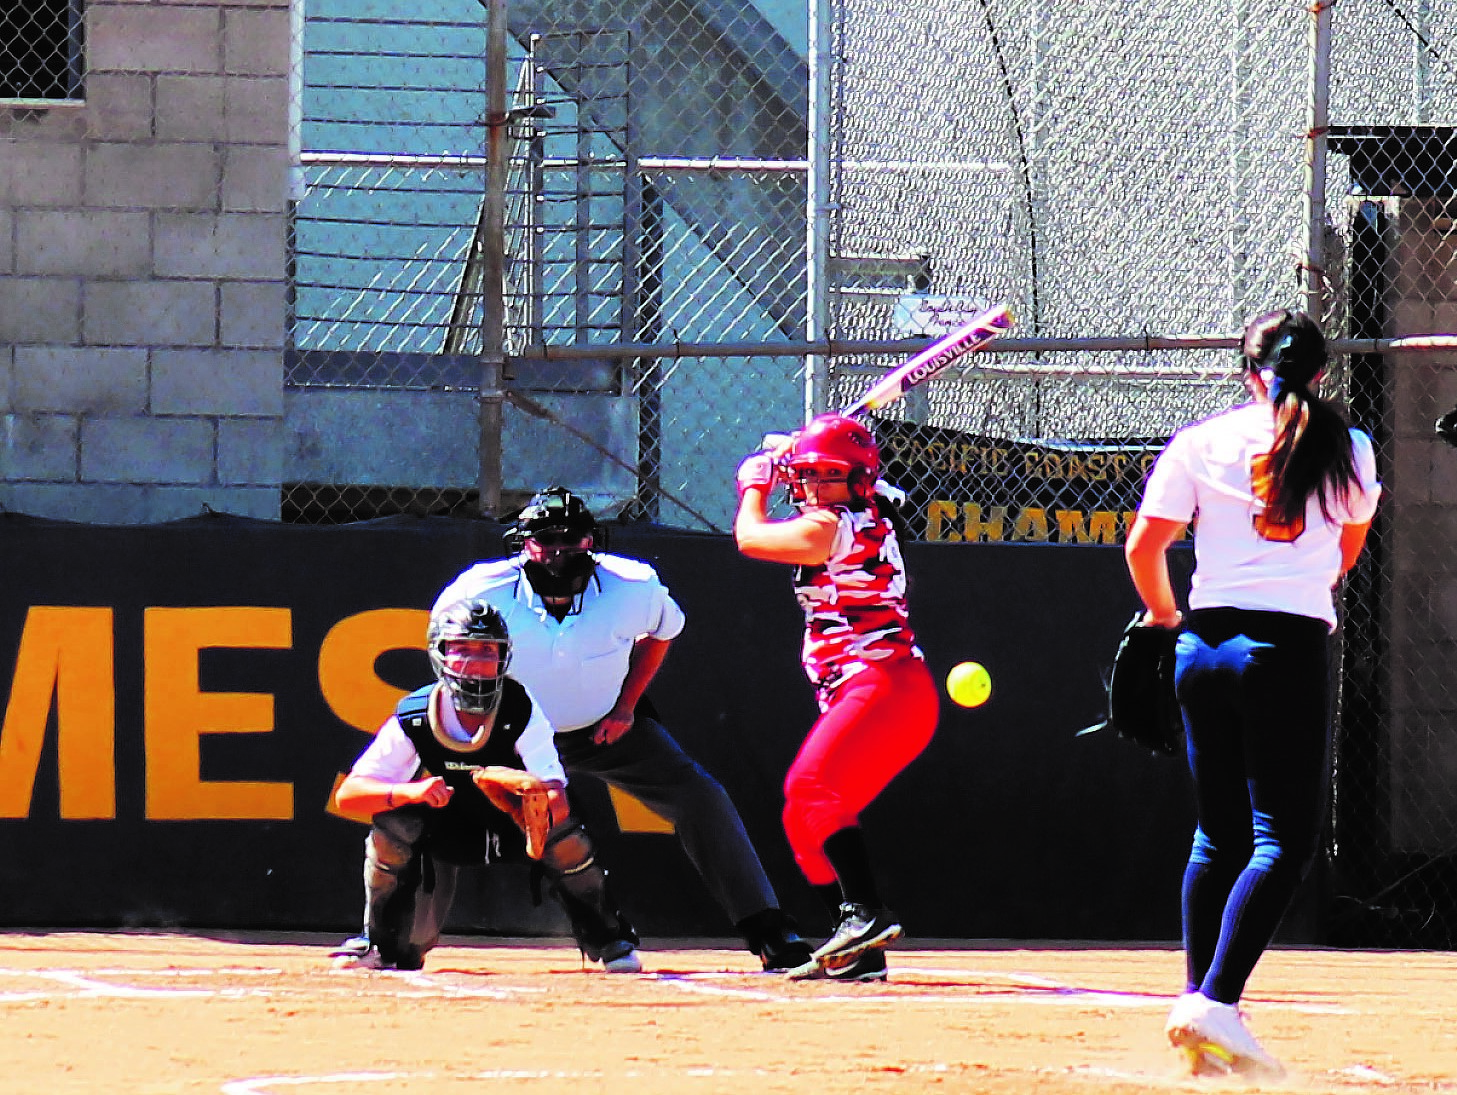 Sarah Crawford (5) pitching vs College of the Desert on 4/5 at Mesa college.